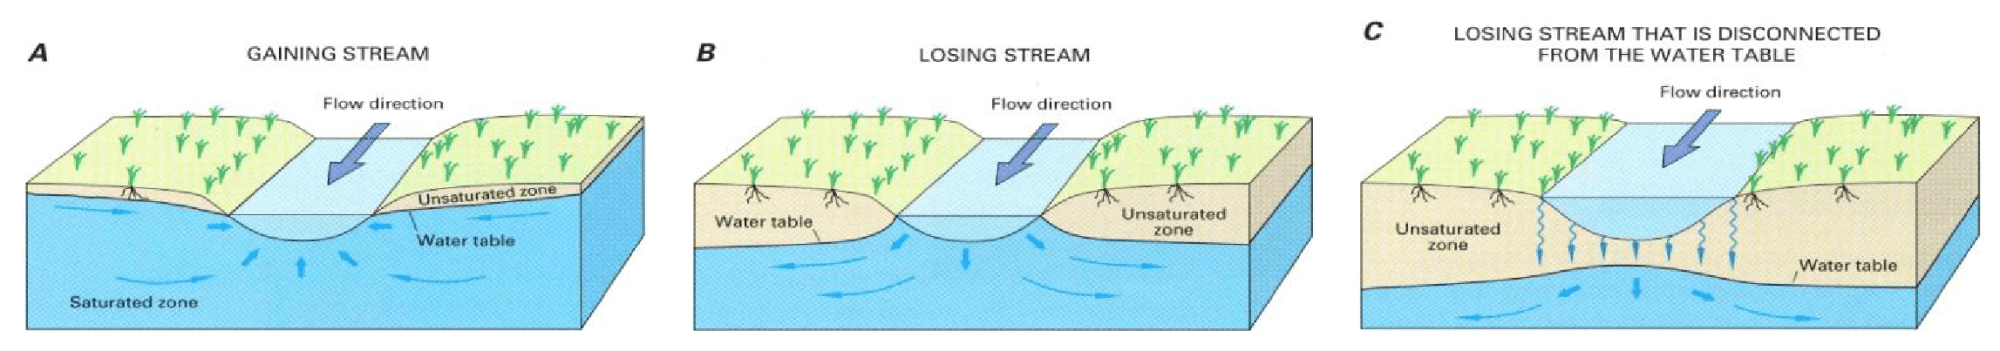 hight resolution of figure 4 a gaining streams receive water from the groundwater system